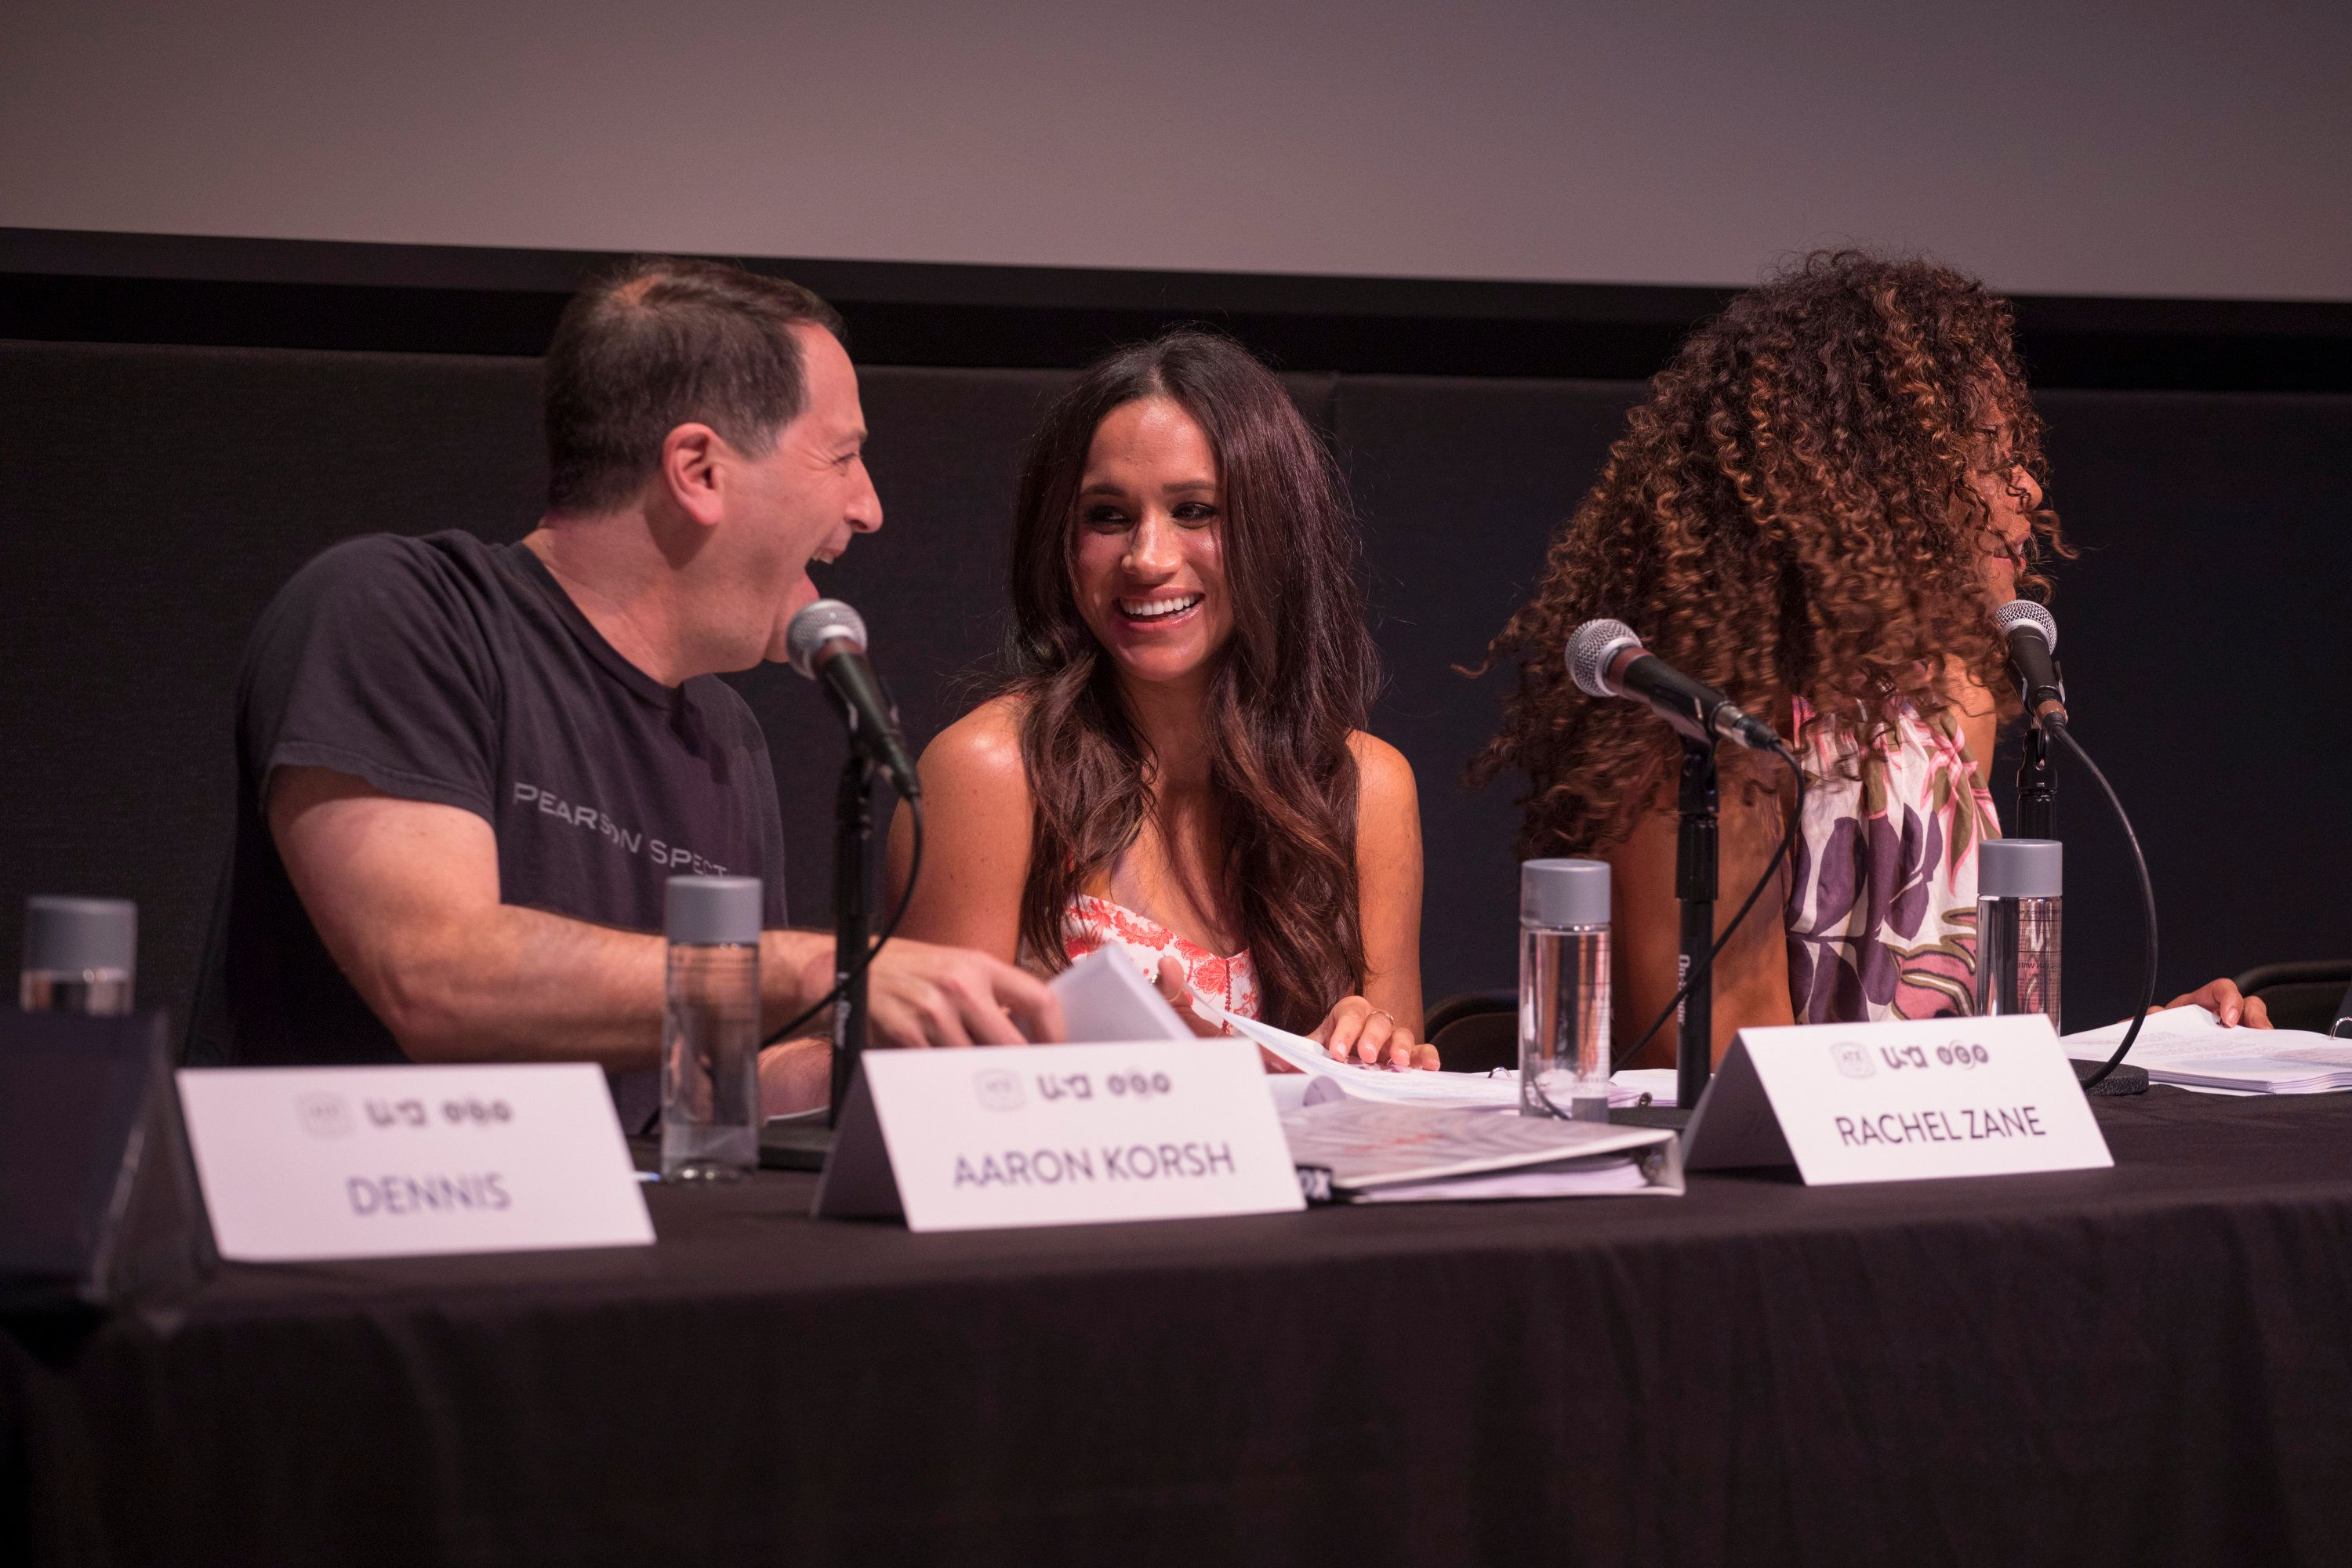 SUITS -- Script Reading Presented by USA Network -- Pictured: (l-r) Aaron Korsh, Meghan Markle, Gina Torres -- (Photo by: Rick Kern/USA Network/NBCU Photo Bank via Getty Images)